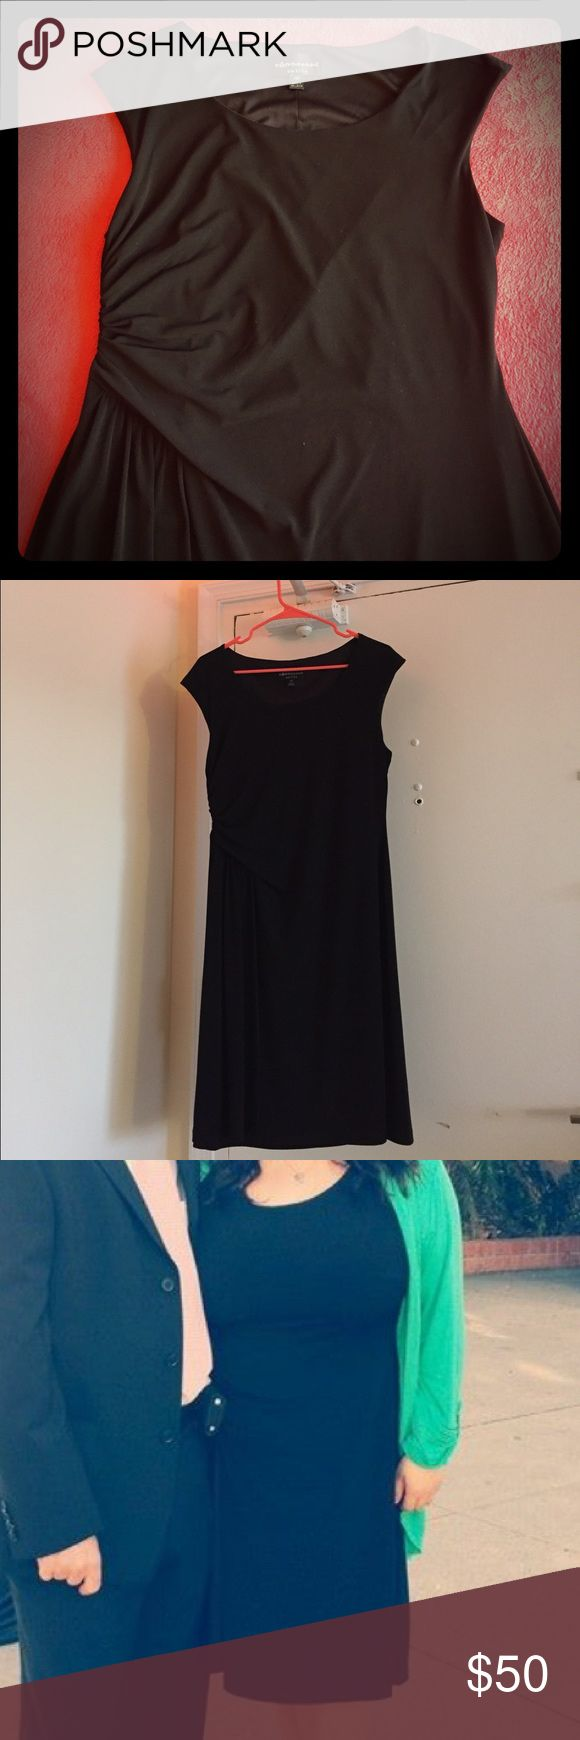 Black petite mini dress This dress was only worn once! EUC! Dresses Mini